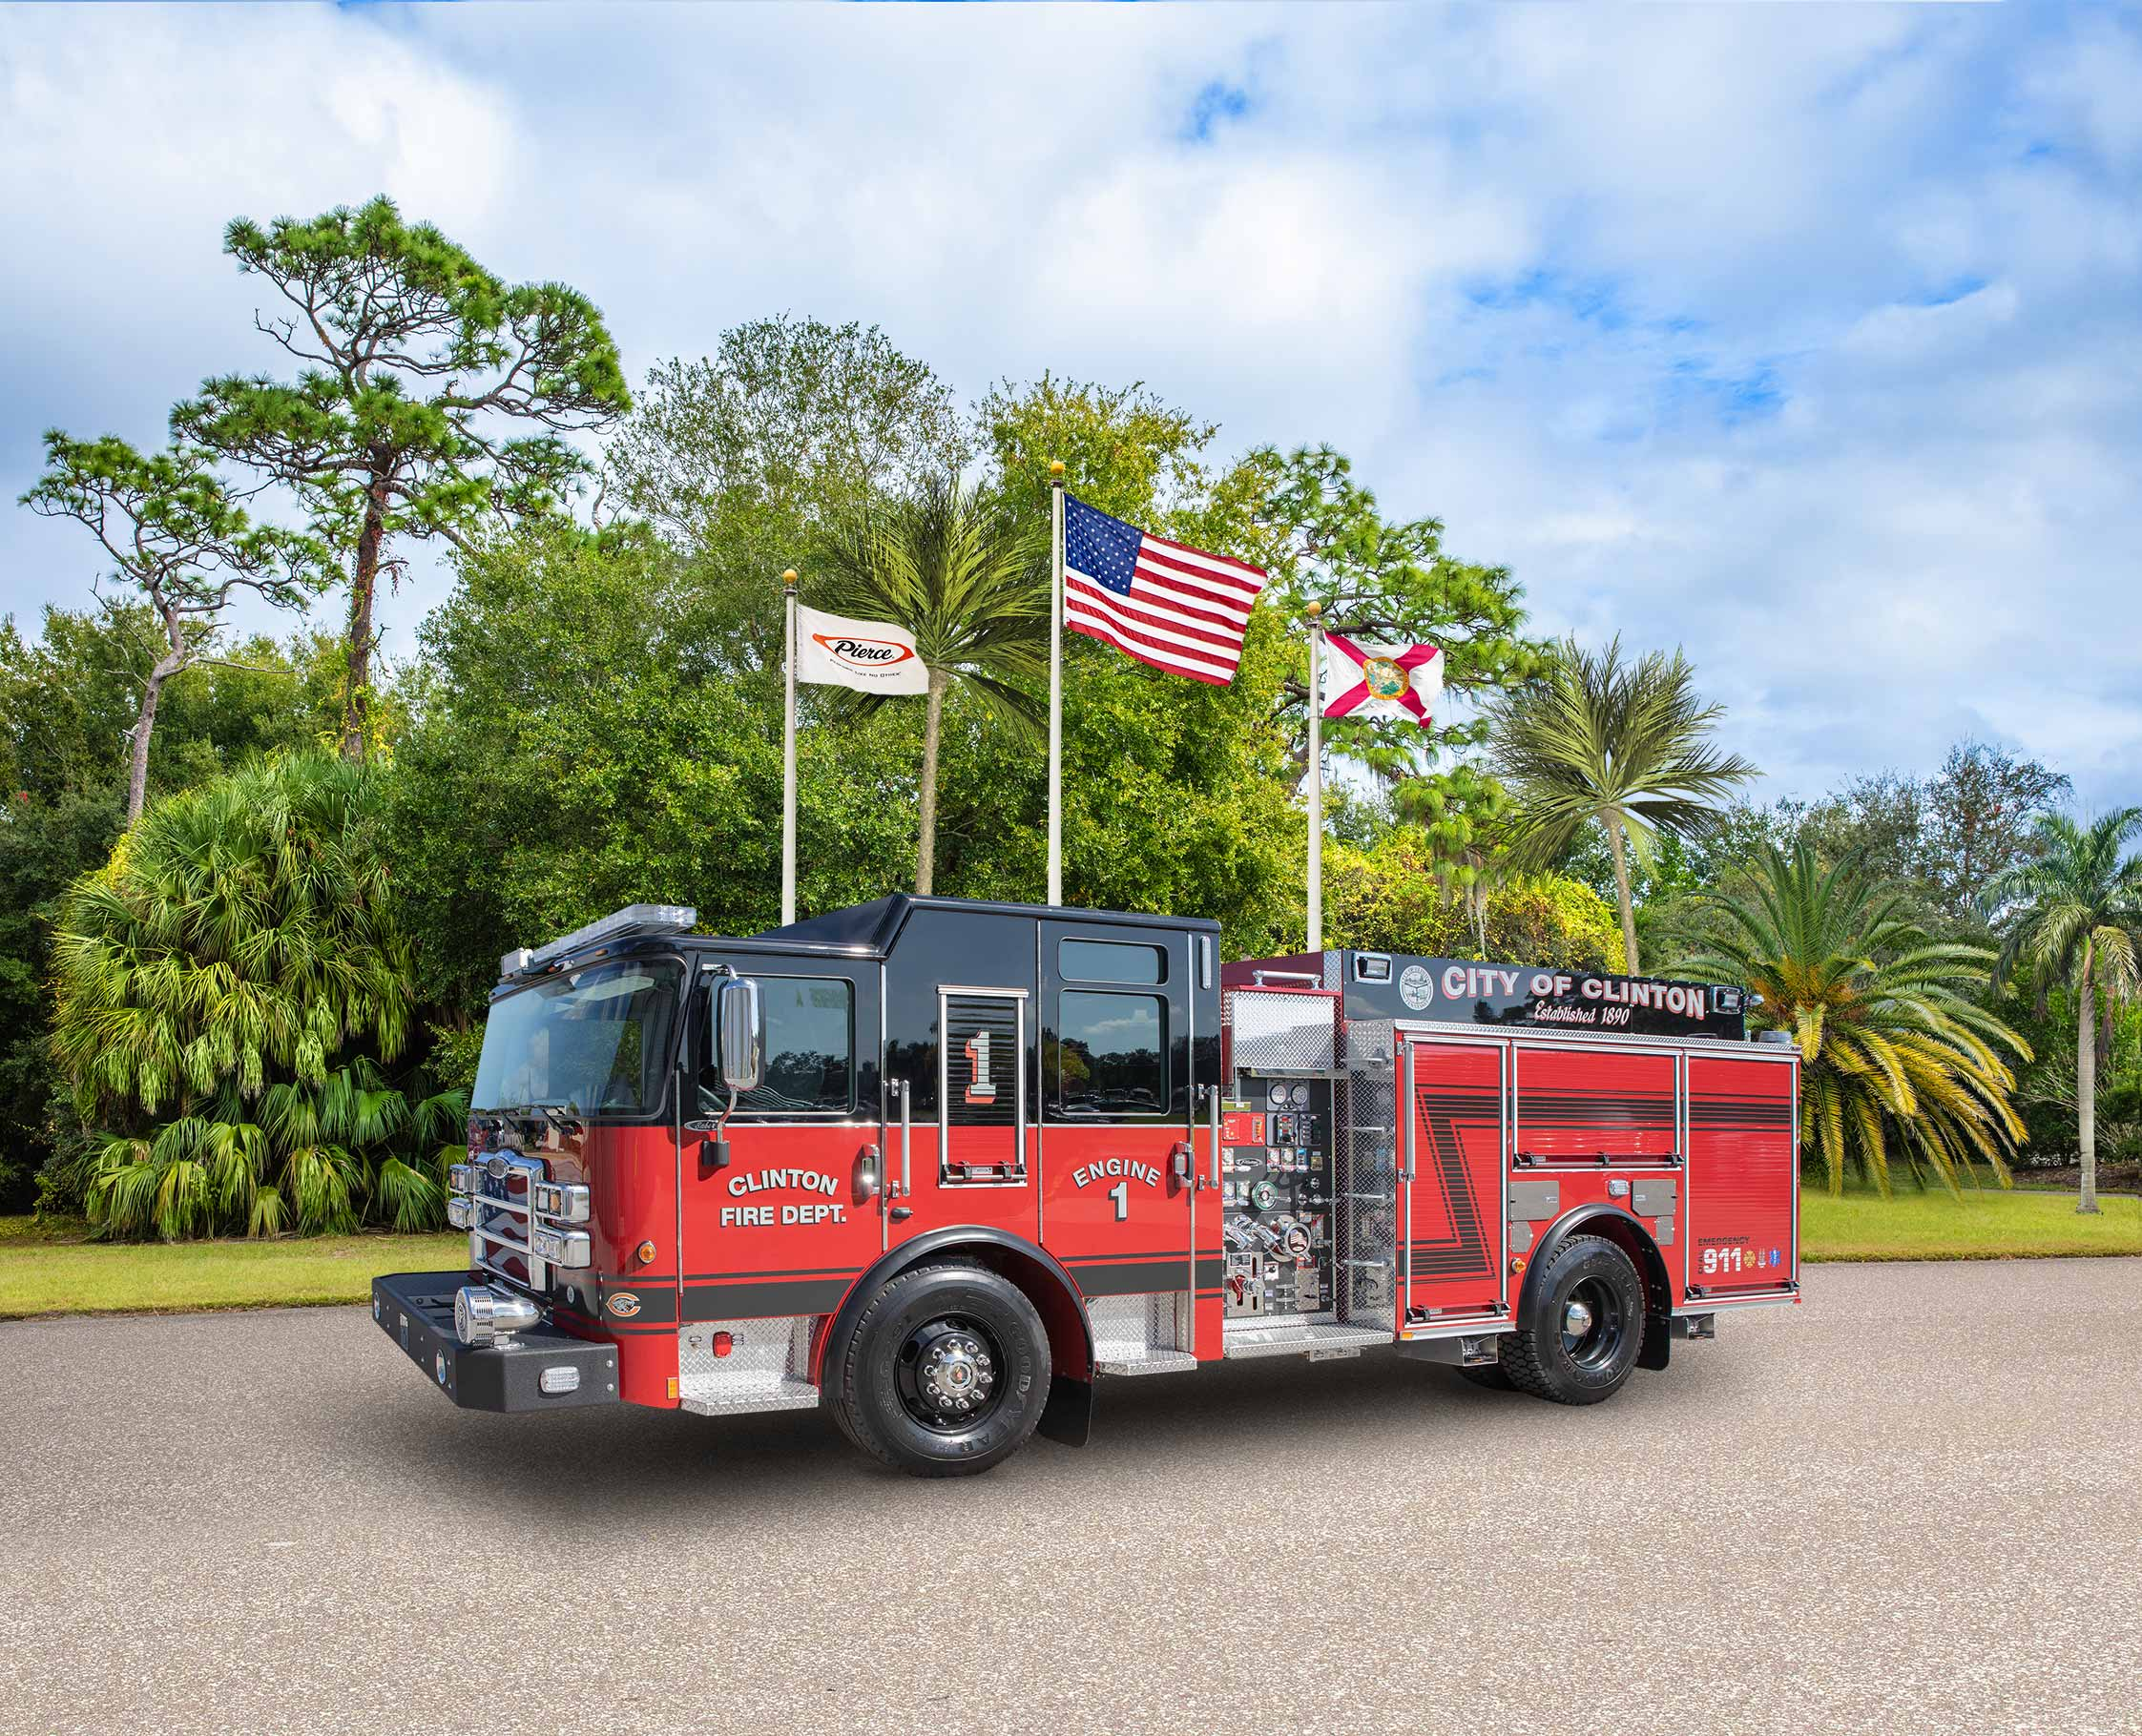 Clinton Fire Department - Pumper